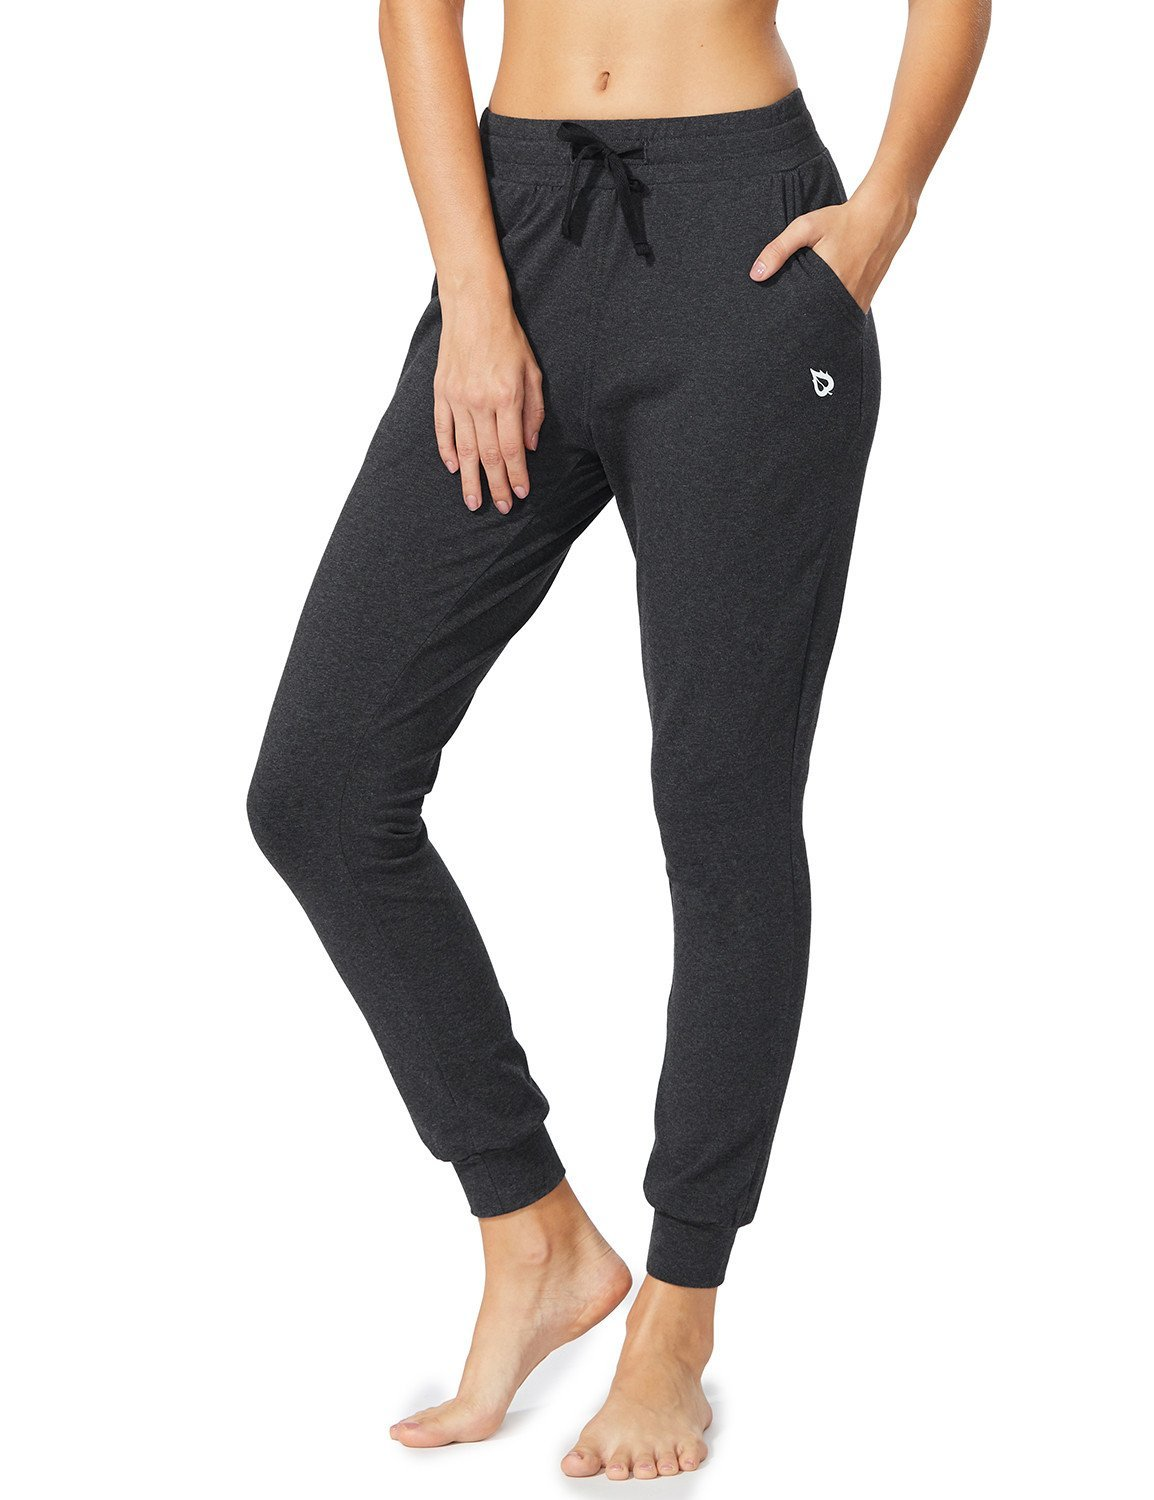 Baleaf Women's Active Yoga Lounge Sweat Pants Pockets Charcoal Size S